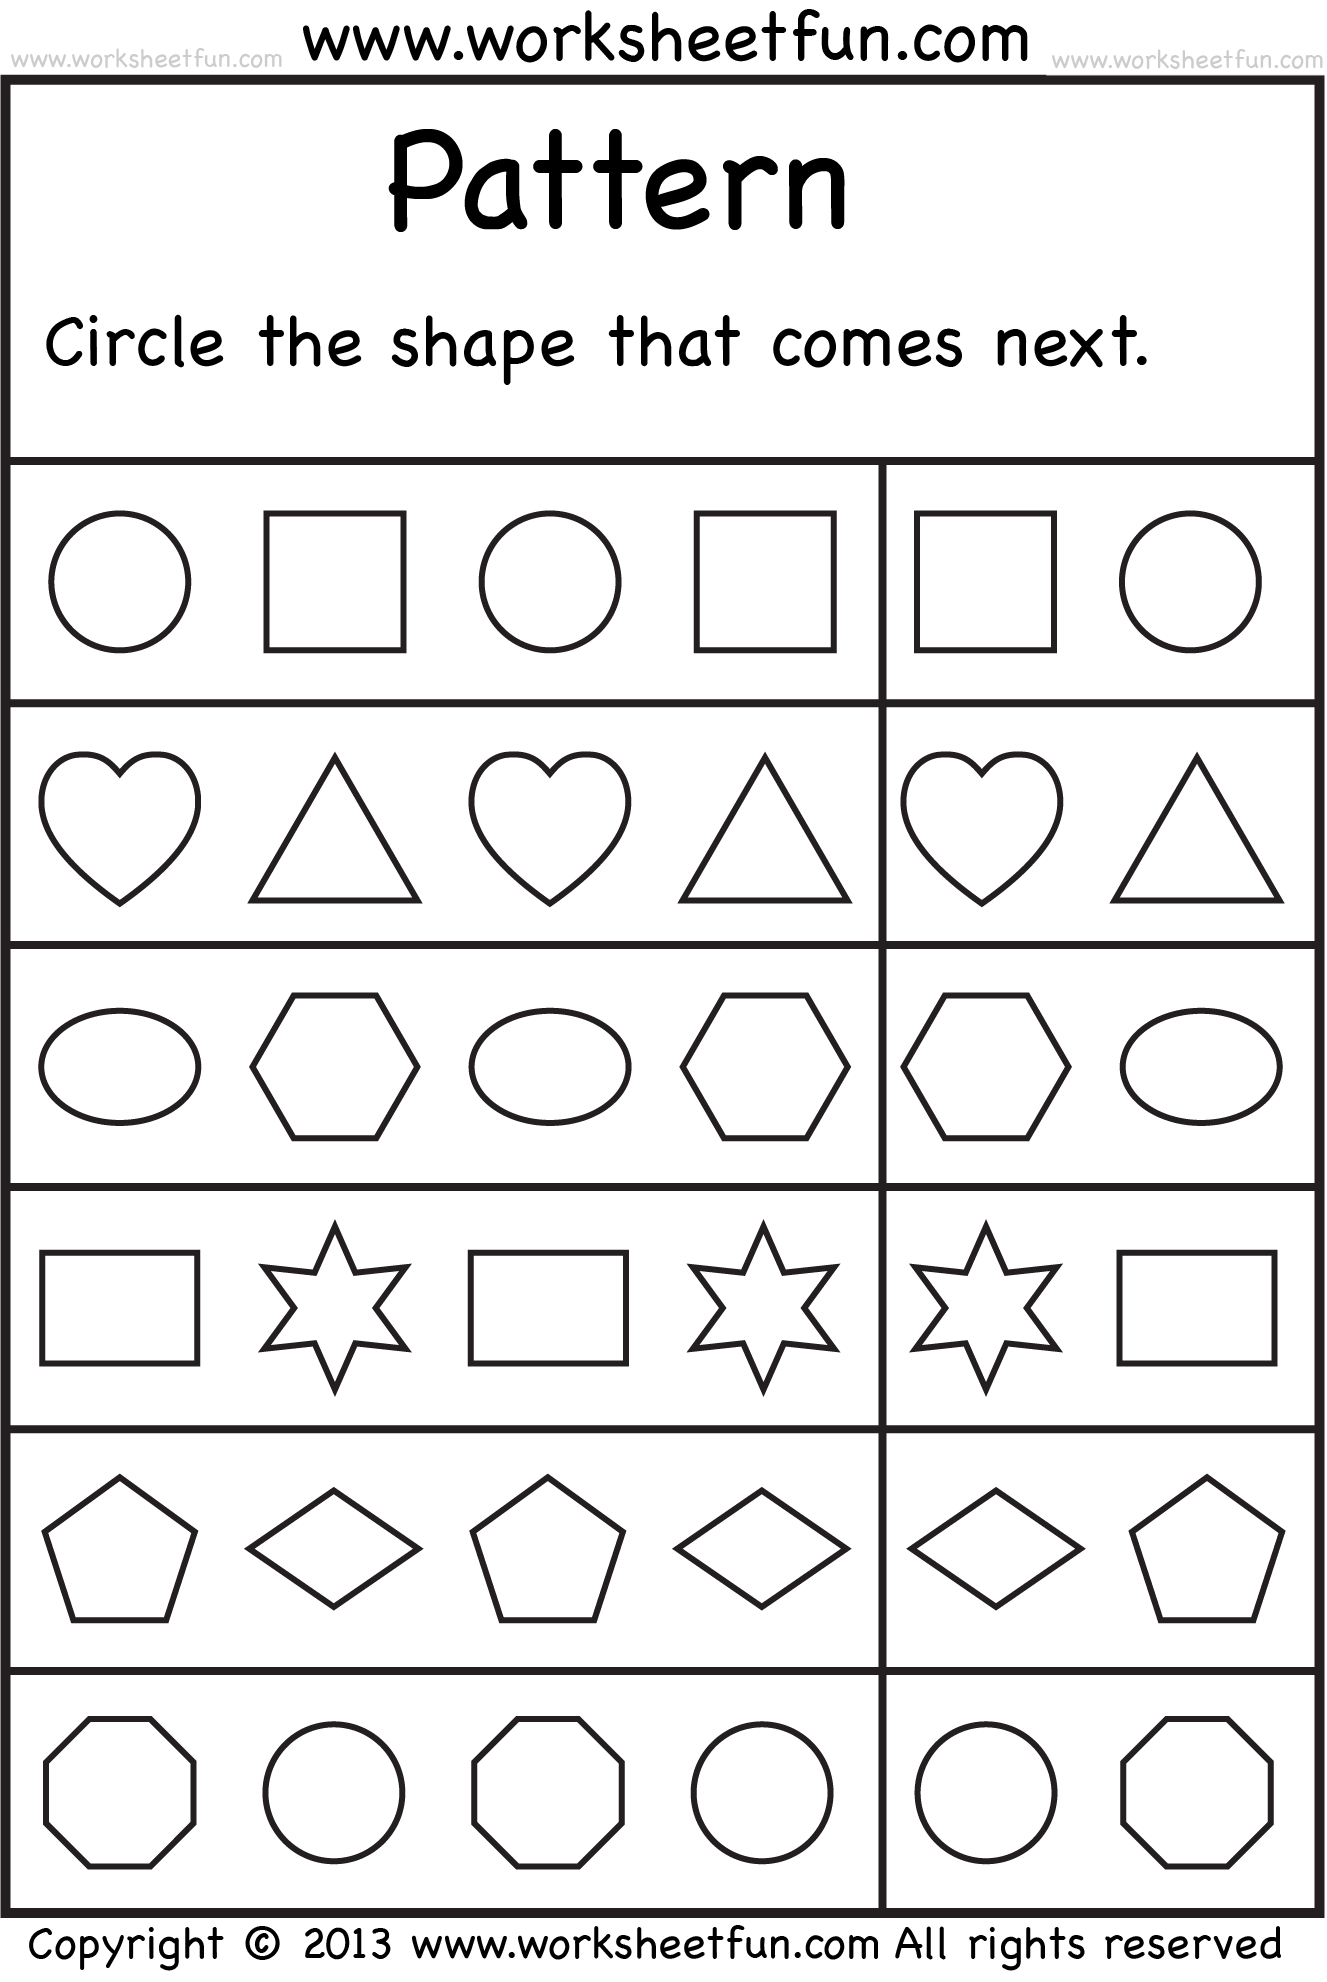 Weirdmailus  Wonderful  Images About School Worksheets On Pinterest  Number Words  With Goodlooking  Images About School Worksheets On Pinterest  Number Words Alphabet Worksheets And Free Printable Kindergarten Worksheets With Agreeable Color By Number Subtraction Worksheets Also Graphs Of Trigonometric Functions Worksheet In Addition New Year Resolutions Worksheet And Halloween Coordinate Graphing Worksheets As Well As Th Grade Free Math Worksheets Additionally  Senses Worksheets For Kindergarten From Pinterestcom With Weirdmailus  Goodlooking  Images About School Worksheets On Pinterest  Number Words  With Agreeable  Images About School Worksheets On Pinterest  Number Words Alphabet Worksheets And Free Printable Kindergarten Worksheets And Wonderful Color By Number Subtraction Worksheets Also Graphs Of Trigonometric Functions Worksheet In Addition New Year Resolutions Worksheet From Pinterestcom